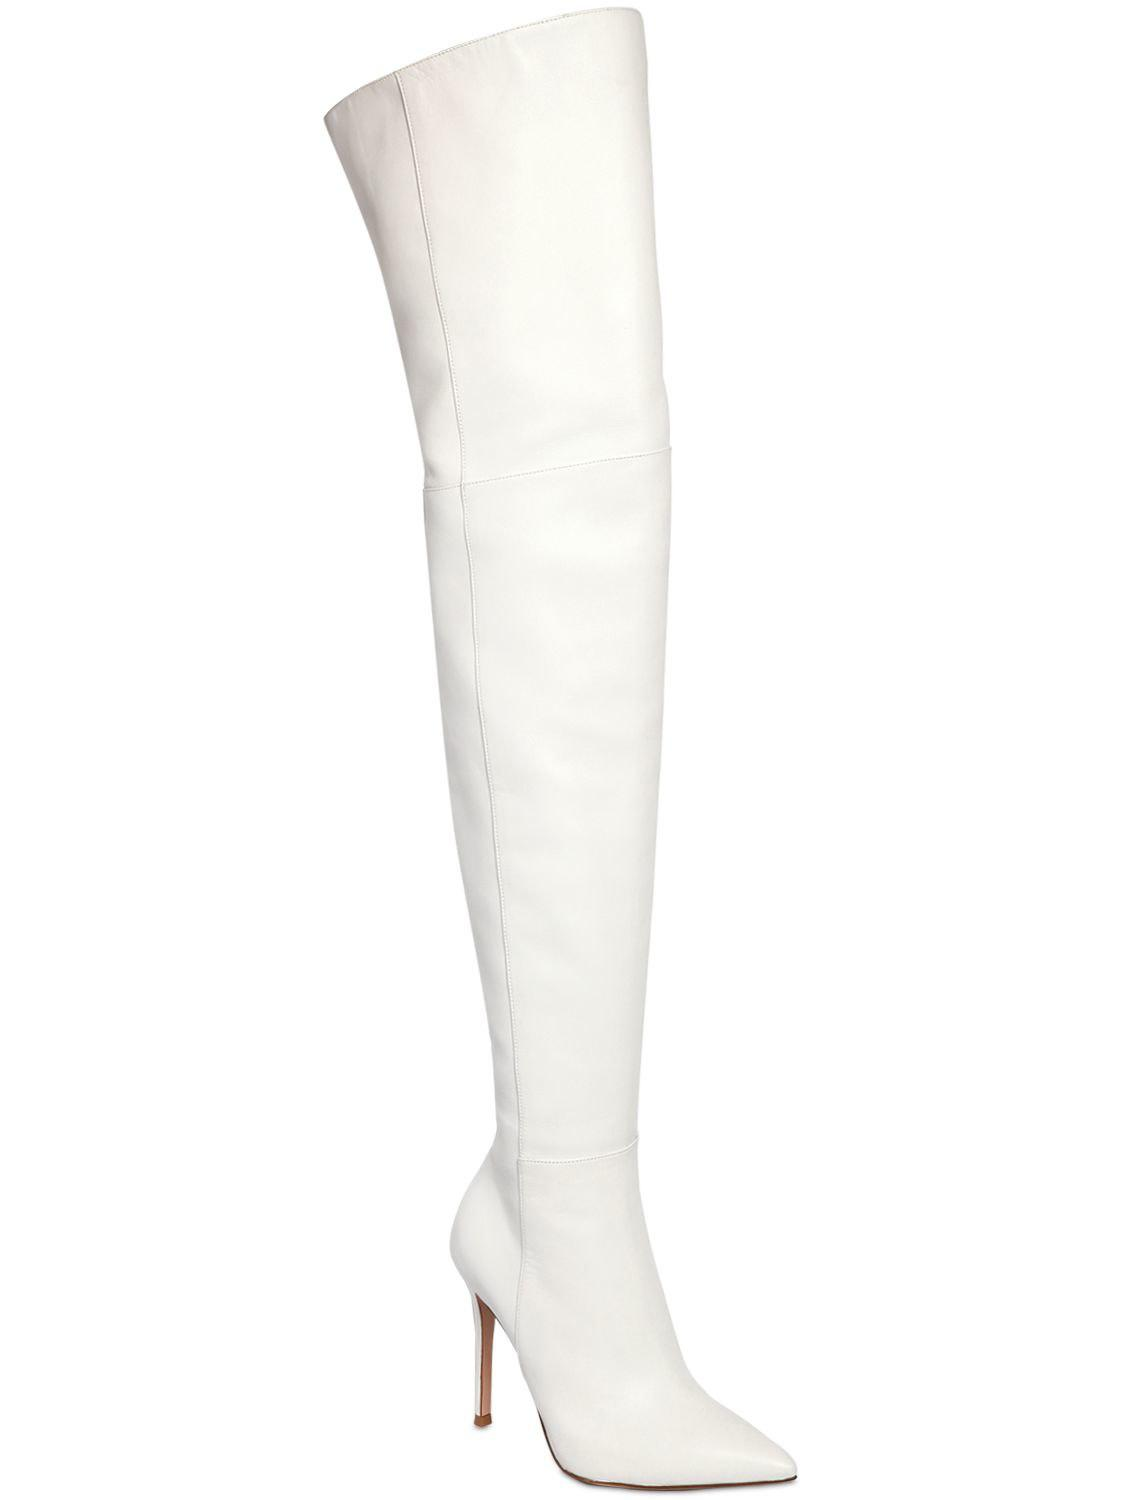 fb47b0ef0d6 Lyst - Gianvito Rossi 105mm Over The Knee Nappa Leather Boots in White